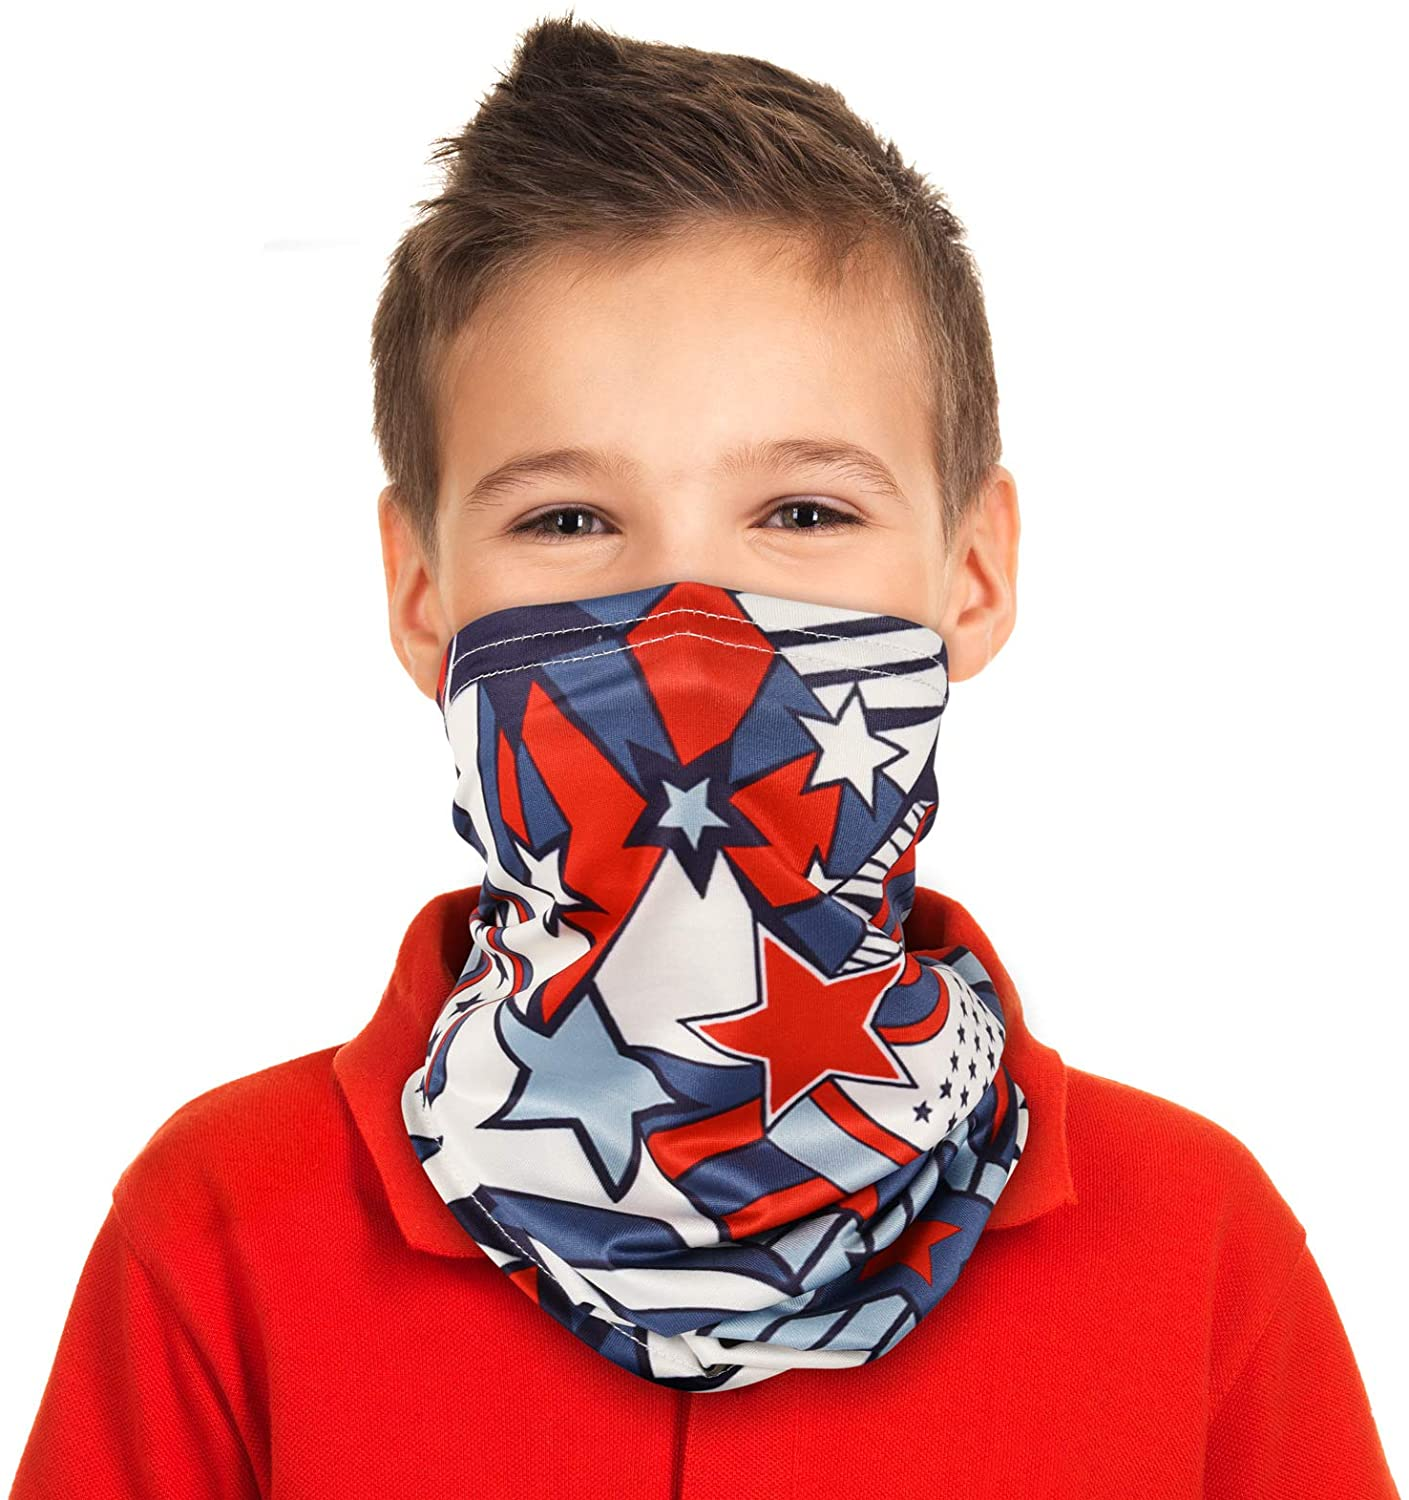 Kids Neck Gaiter, Youth Neck Gaiters Scarf for Kids, Face Coverings for Children